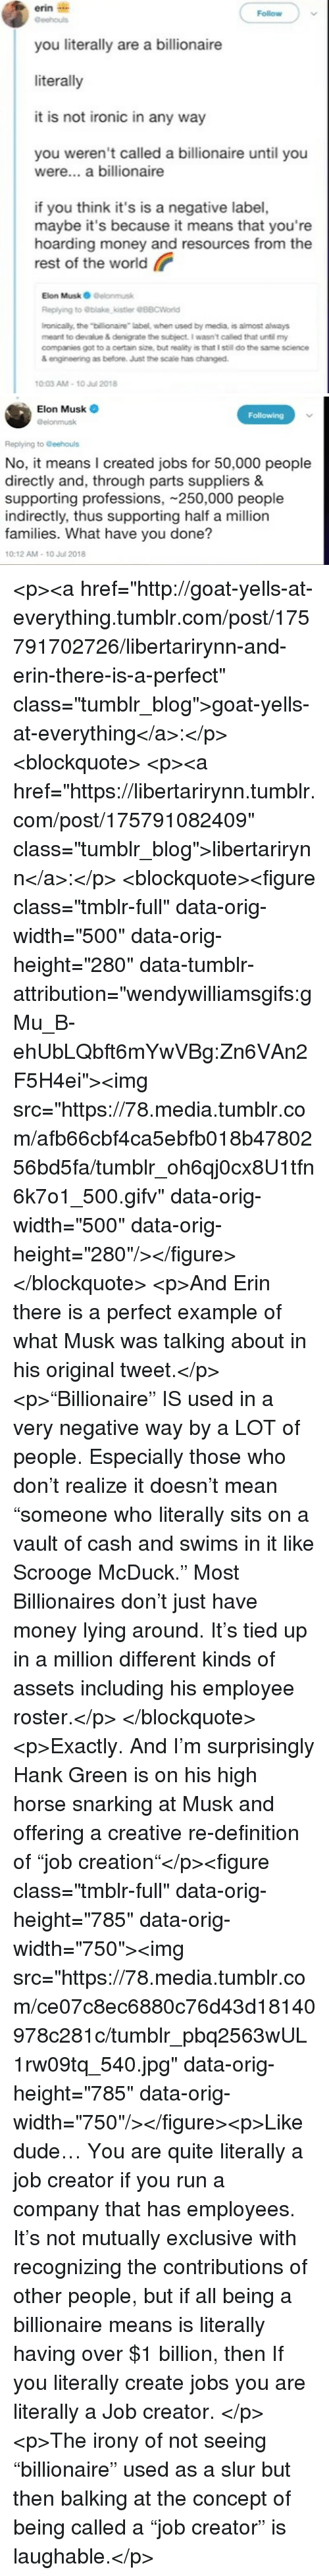 """Dude, Ironic, and Money: erin i  you literally are a billionaire  literally  it is not ironic in any way  Follow  you weren't called a billionaire until you  were... a billionaire  if you think it's is a negative label,  maybe it's because it means that you're  hoarding money and resources from the  rest of the world  Elon Musk O Delonmusk  Replying to blake,kistler @88CWorld  ronically, the """"billionaire label, when used by media, is almost always  meant to devalue & denigrate the subject. I wasnt called that until my  companies got to a certain size, but reality is that I still do the same science  & engineeing as before. Just the scale has changed.  0:03 AM-10 Jul 2018   Elon Musk  @elonmusk  Following  Replying to Geehouls  No, it means I created jobs for 50,000 people  directly and, through parts suppliers &  supporting professions, 250,000 people  indirectly, thus supporting half a million  families. What have you done?  10:12 AM-10 Jul 2018 <p><a href=""""http://goat-yells-at-everything.tumblr.com/post/175791702726/libertarirynn-and-erin-there-is-a-perfect"""" class=""""tumblr_blog"""">goat-yells-at-everything</a>:</p><blockquote> <p><a href=""""https://libertarirynn.tumblr.com/post/175791082409"""" class=""""tumblr_blog"""">libertarirynn</a>:</p>  <blockquote><figure class=""""tmblr-full"""" data-orig-width=""""500"""" data-orig-height=""""280"""" data-tumblr-attribution=""""wendywilliamsgifs:gMu_B-ehUbLQbft6mYwVBg:Zn6VAn2F5H4ei""""><img src=""""https://78.media.tumblr.com/afb66cbf4ca5ebfb018b4780256bd5fa/tumblr_oh6qj0cx8U1tfn6k7o1_500.gifv"""" data-orig-width=""""500"""" data-orig-height=""""280""""/></figure></blockquote>  <p>And Erin there is a perfect example of what Musk was talking about in his original tweet.</p> <p>""""Billionaire"""" IS used in a very negative way by a LOT of people. Especially those who don't realize it doesn't mean """"someone who literally sits on a vault of cash and swims in it like Scrooge McDuck."""" Most Billionaires don't just have money lying around. It's tied up in a million different kinds of assets"""